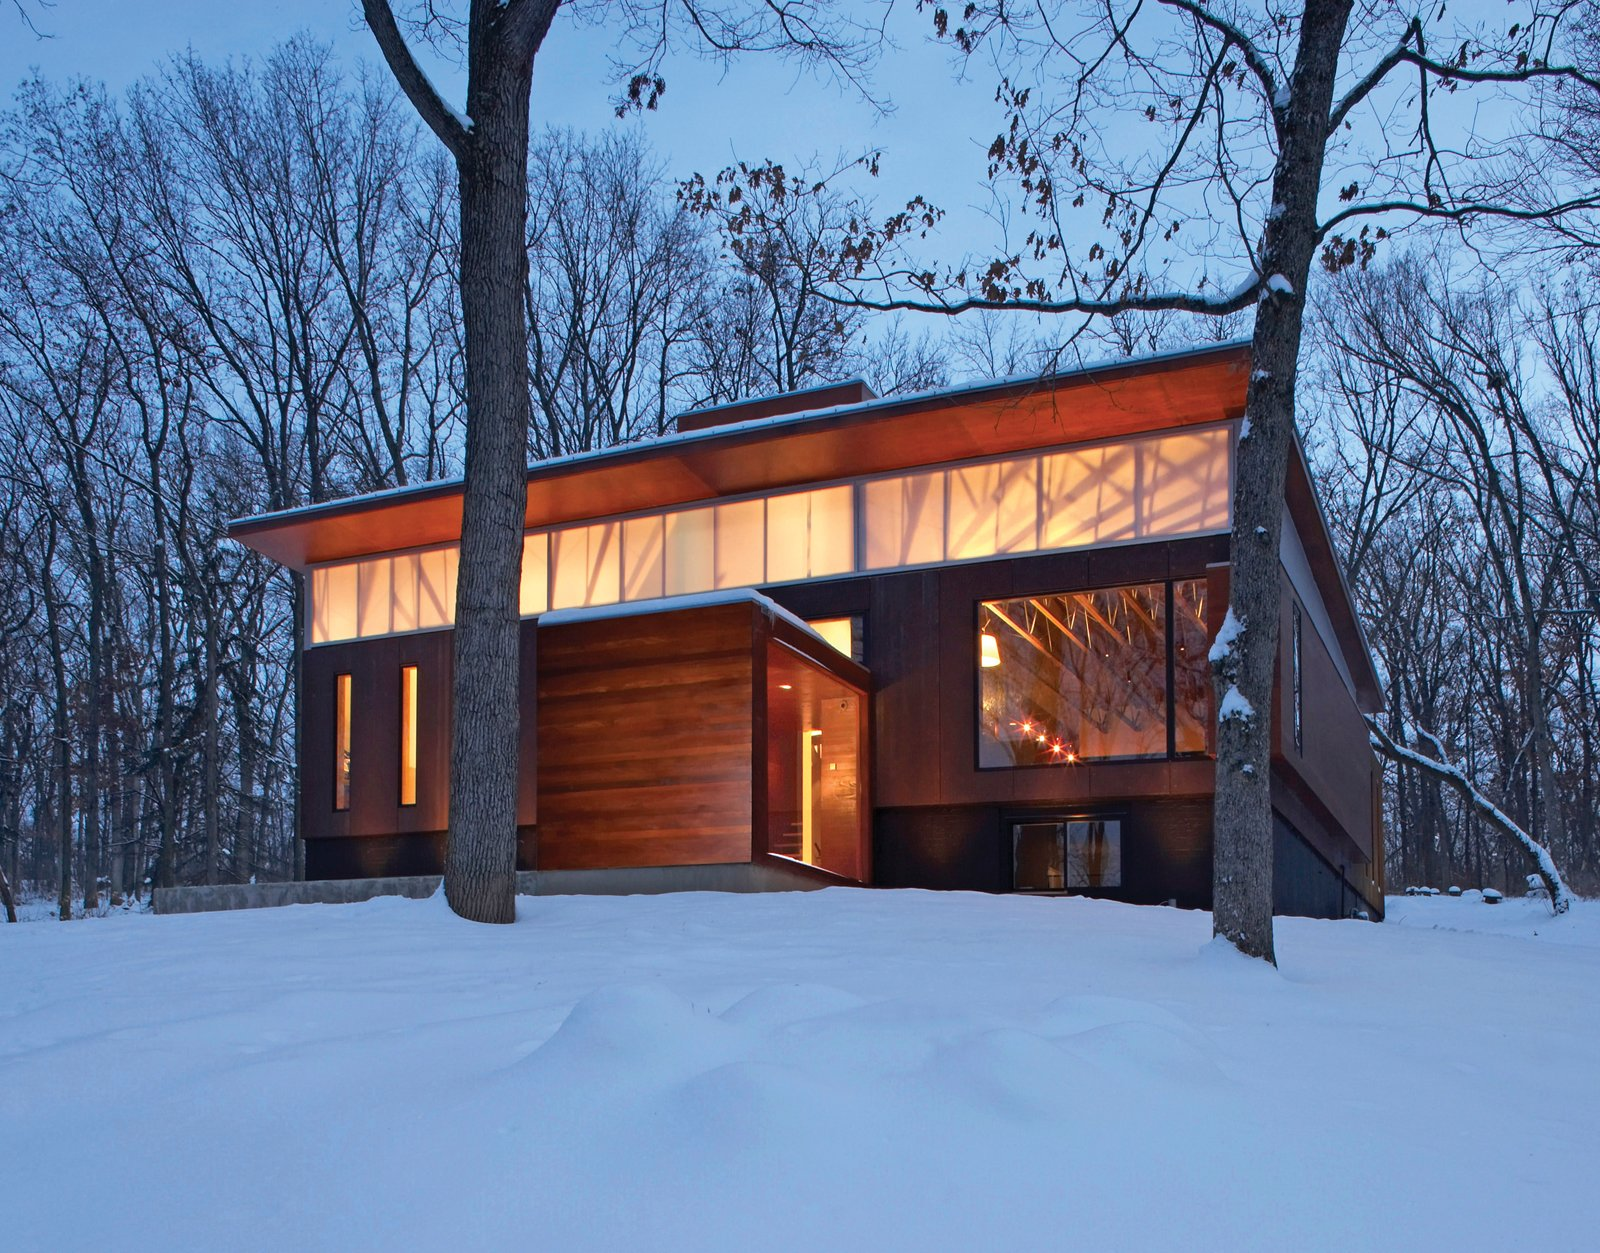 The house is wrapped on three sides with a rain screen of weathering steel panels. On the northern facade, a clerestory window lets in light to illuminate the inside spaces.  Shining Examples of Clerestory Windows by Luke Hopping from The Best of Small Spaces